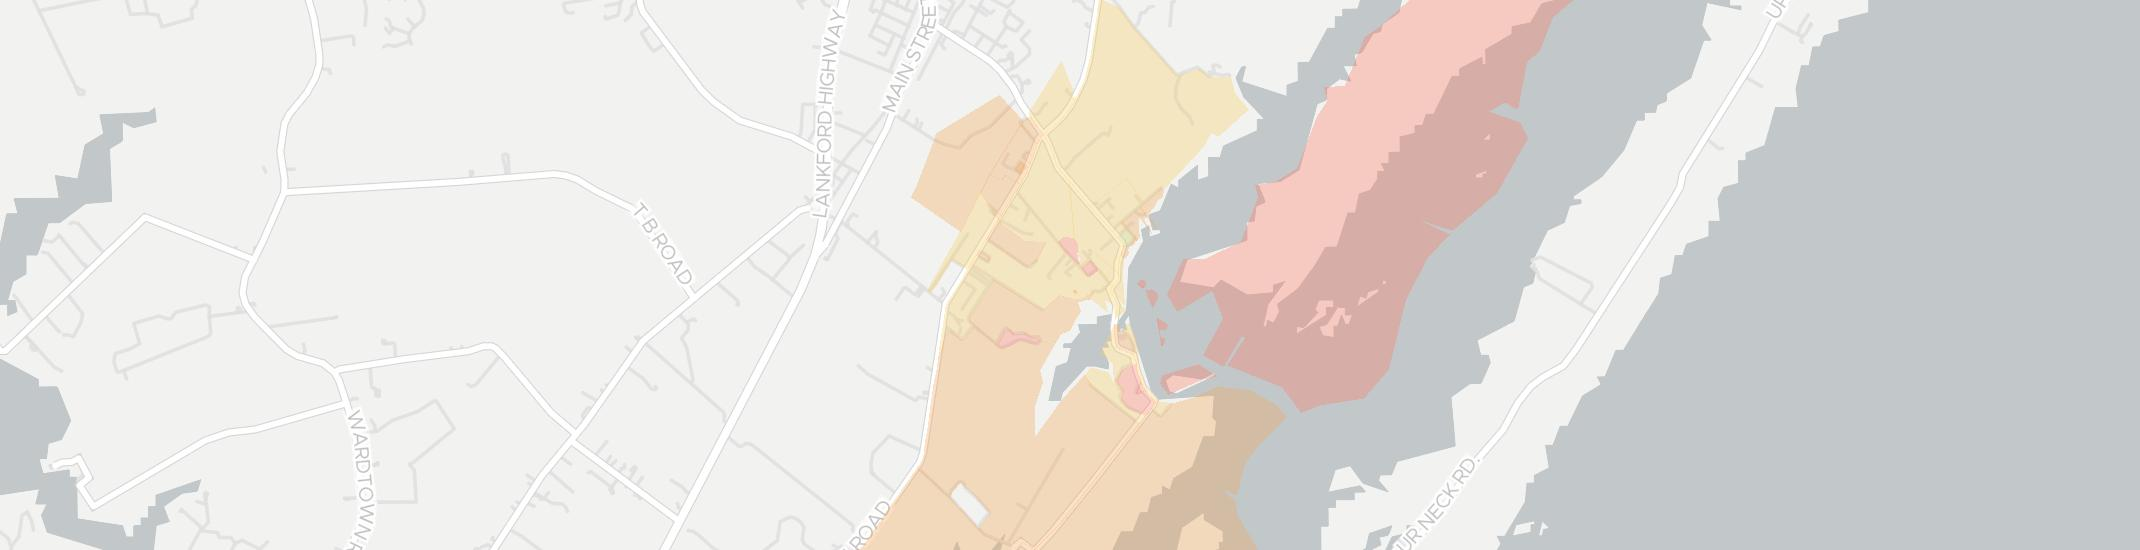 Willis Wharf Internet Competition Map. Click for interactive map.